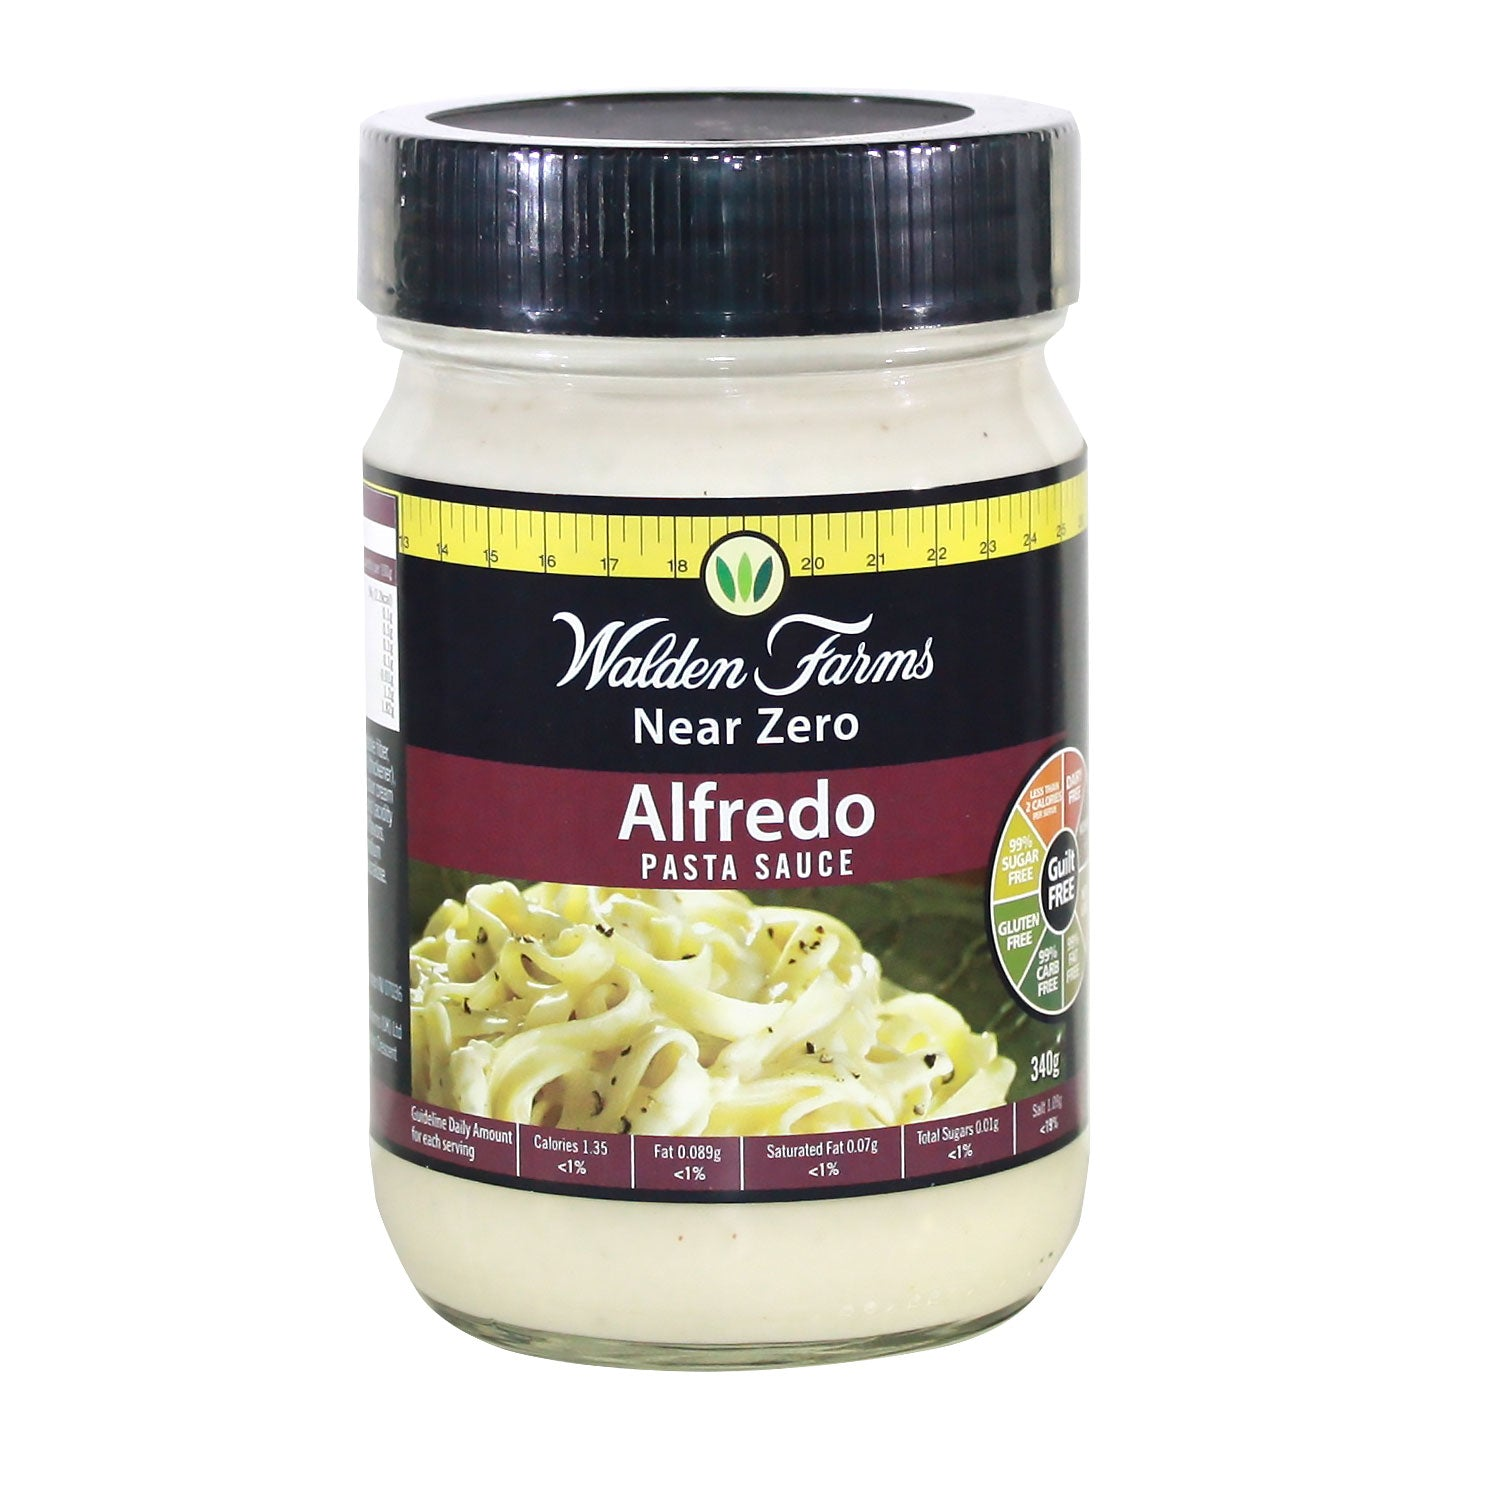 Dairy Free Alfredo Pasta Sauce with Near Zero Calories, Fats, & Carbs